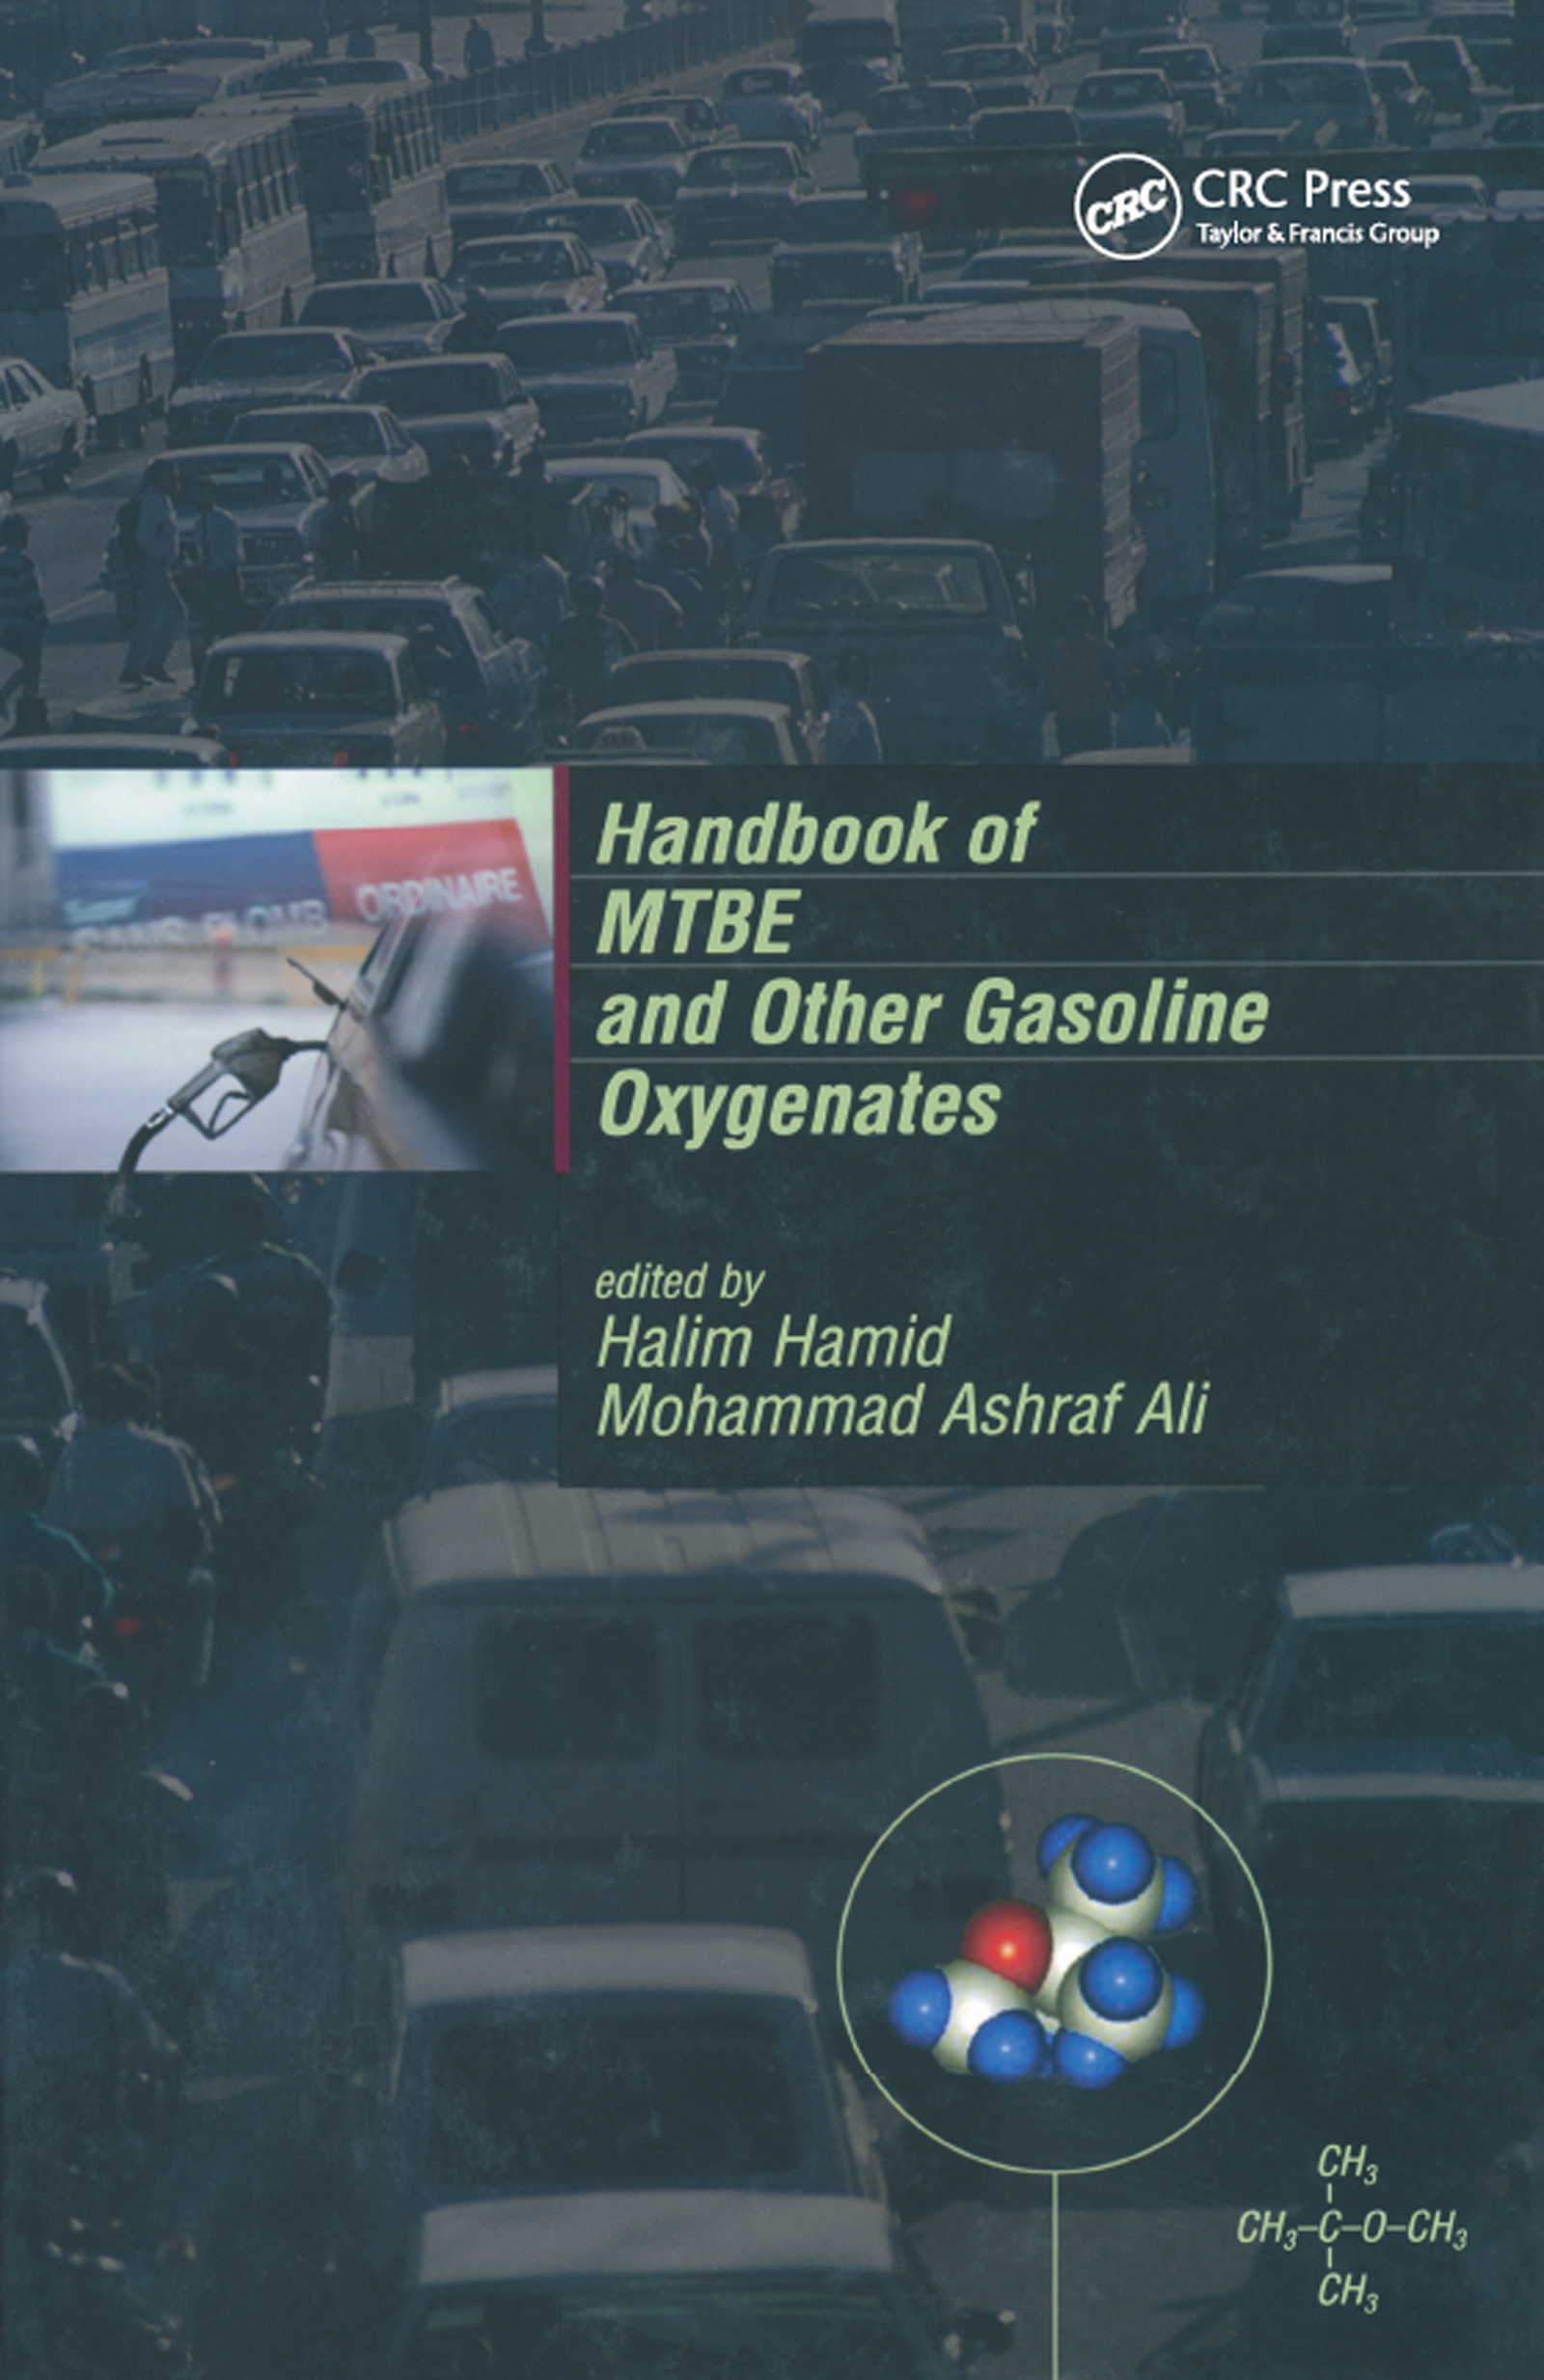 Handbook of MTBE and Other Gasoline Oxygenates: 1st Edition (Paperback) book cover